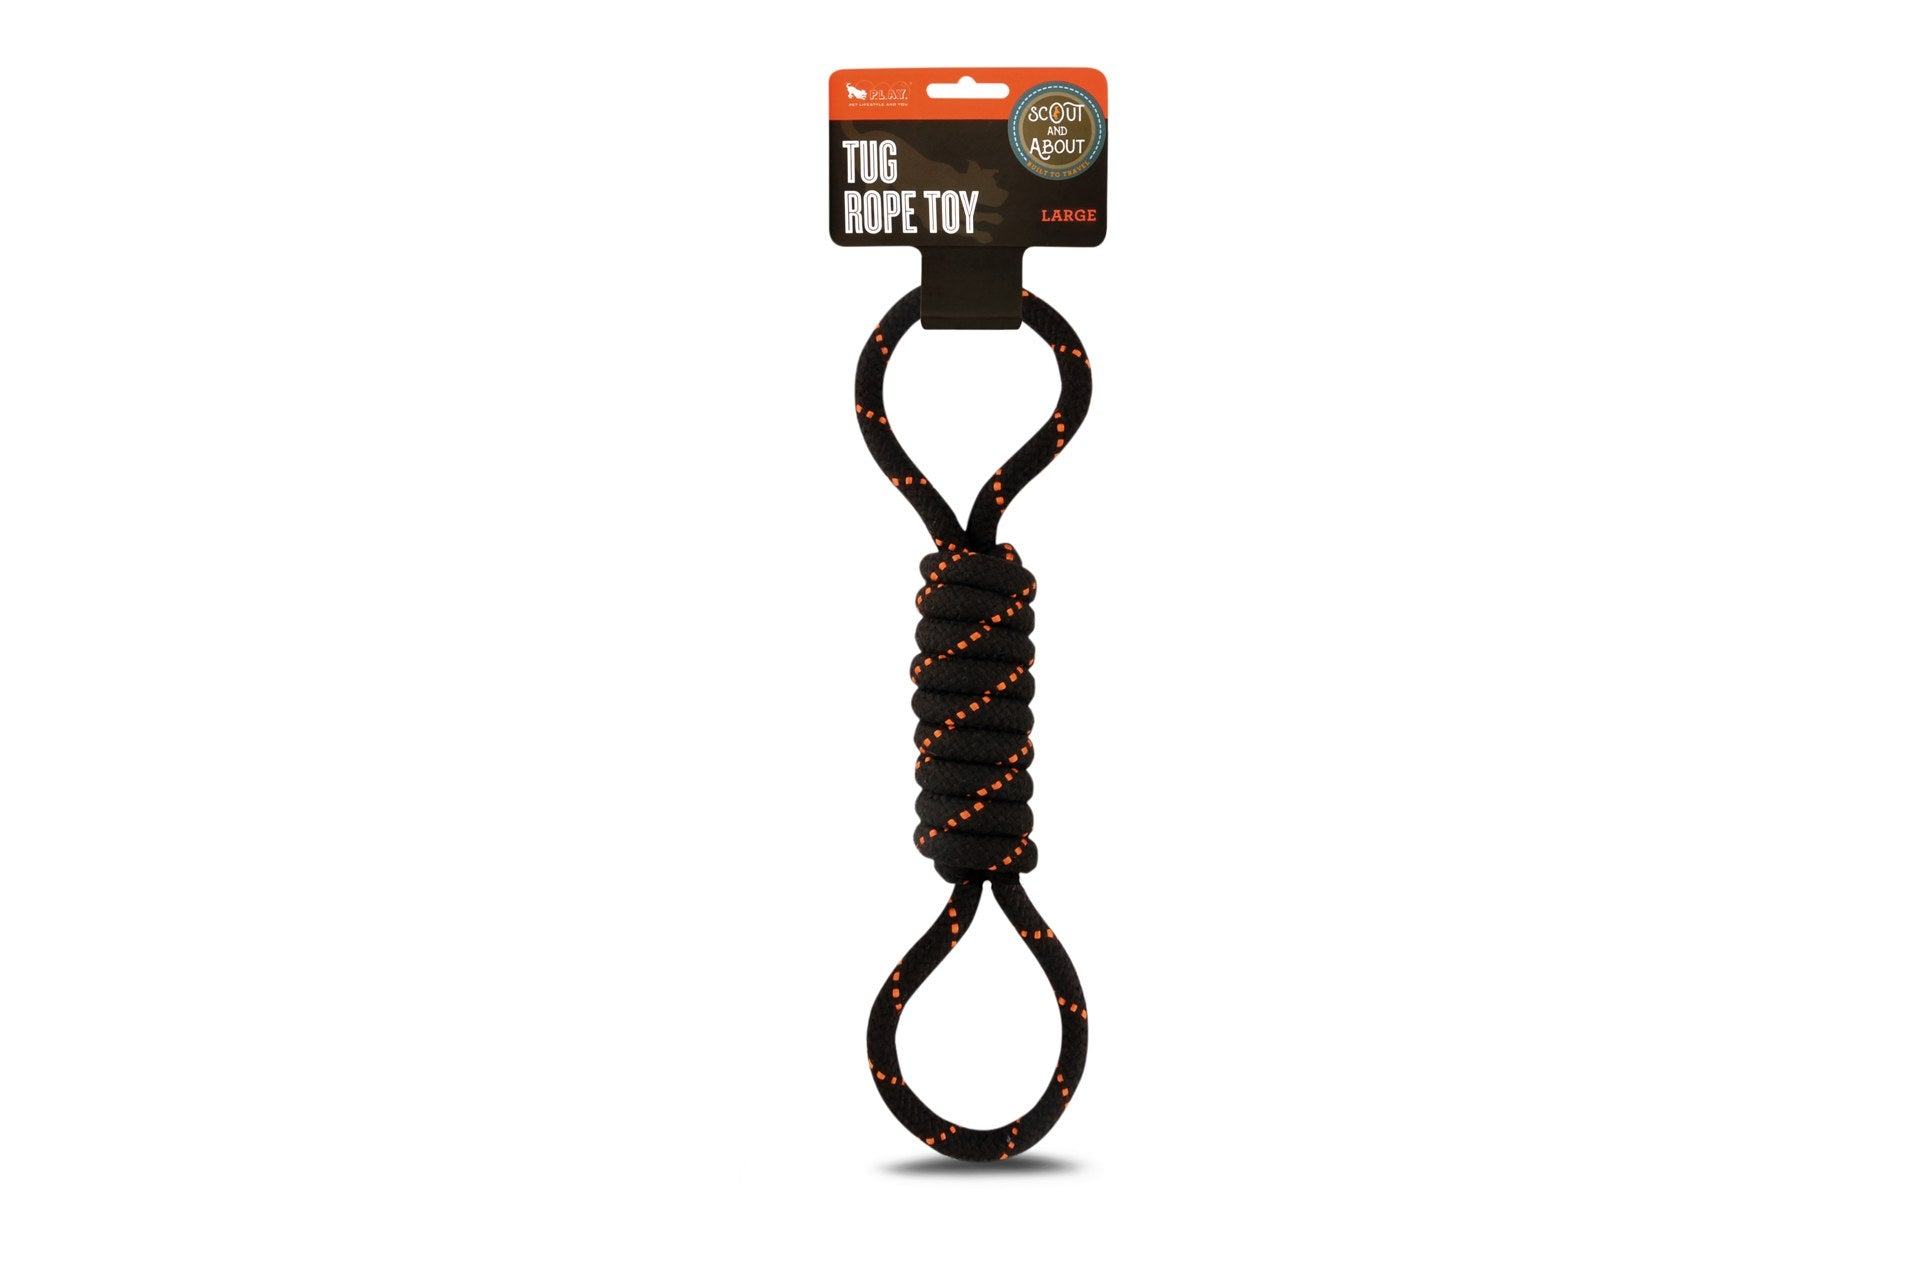 Scout & About Rope Toy - Tug